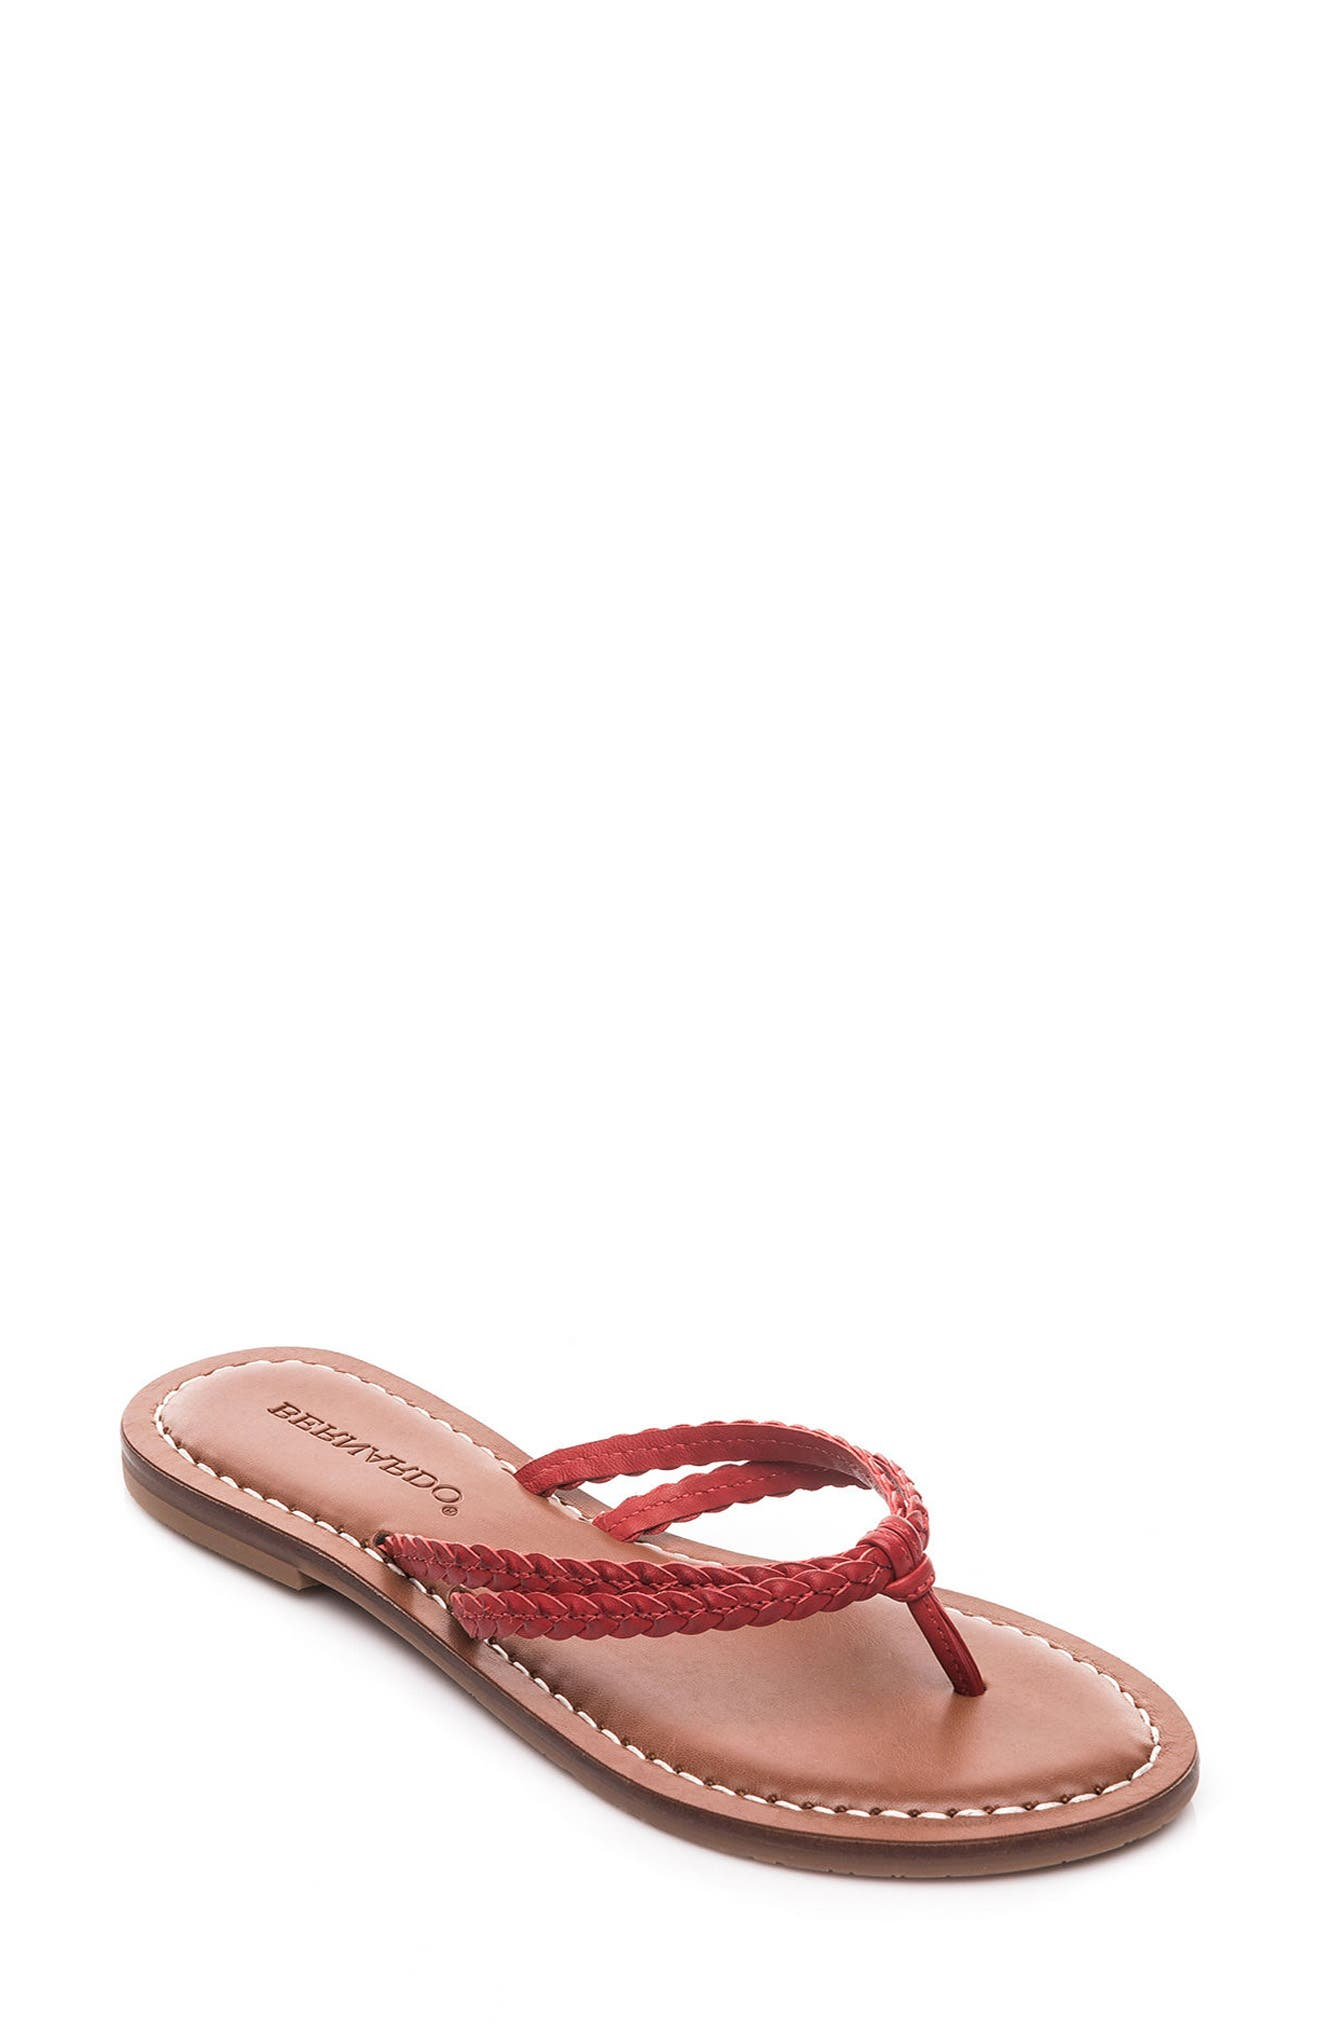 Bernardo Greta Braided Strap Sandal,                             Main thumbnail 4, color,